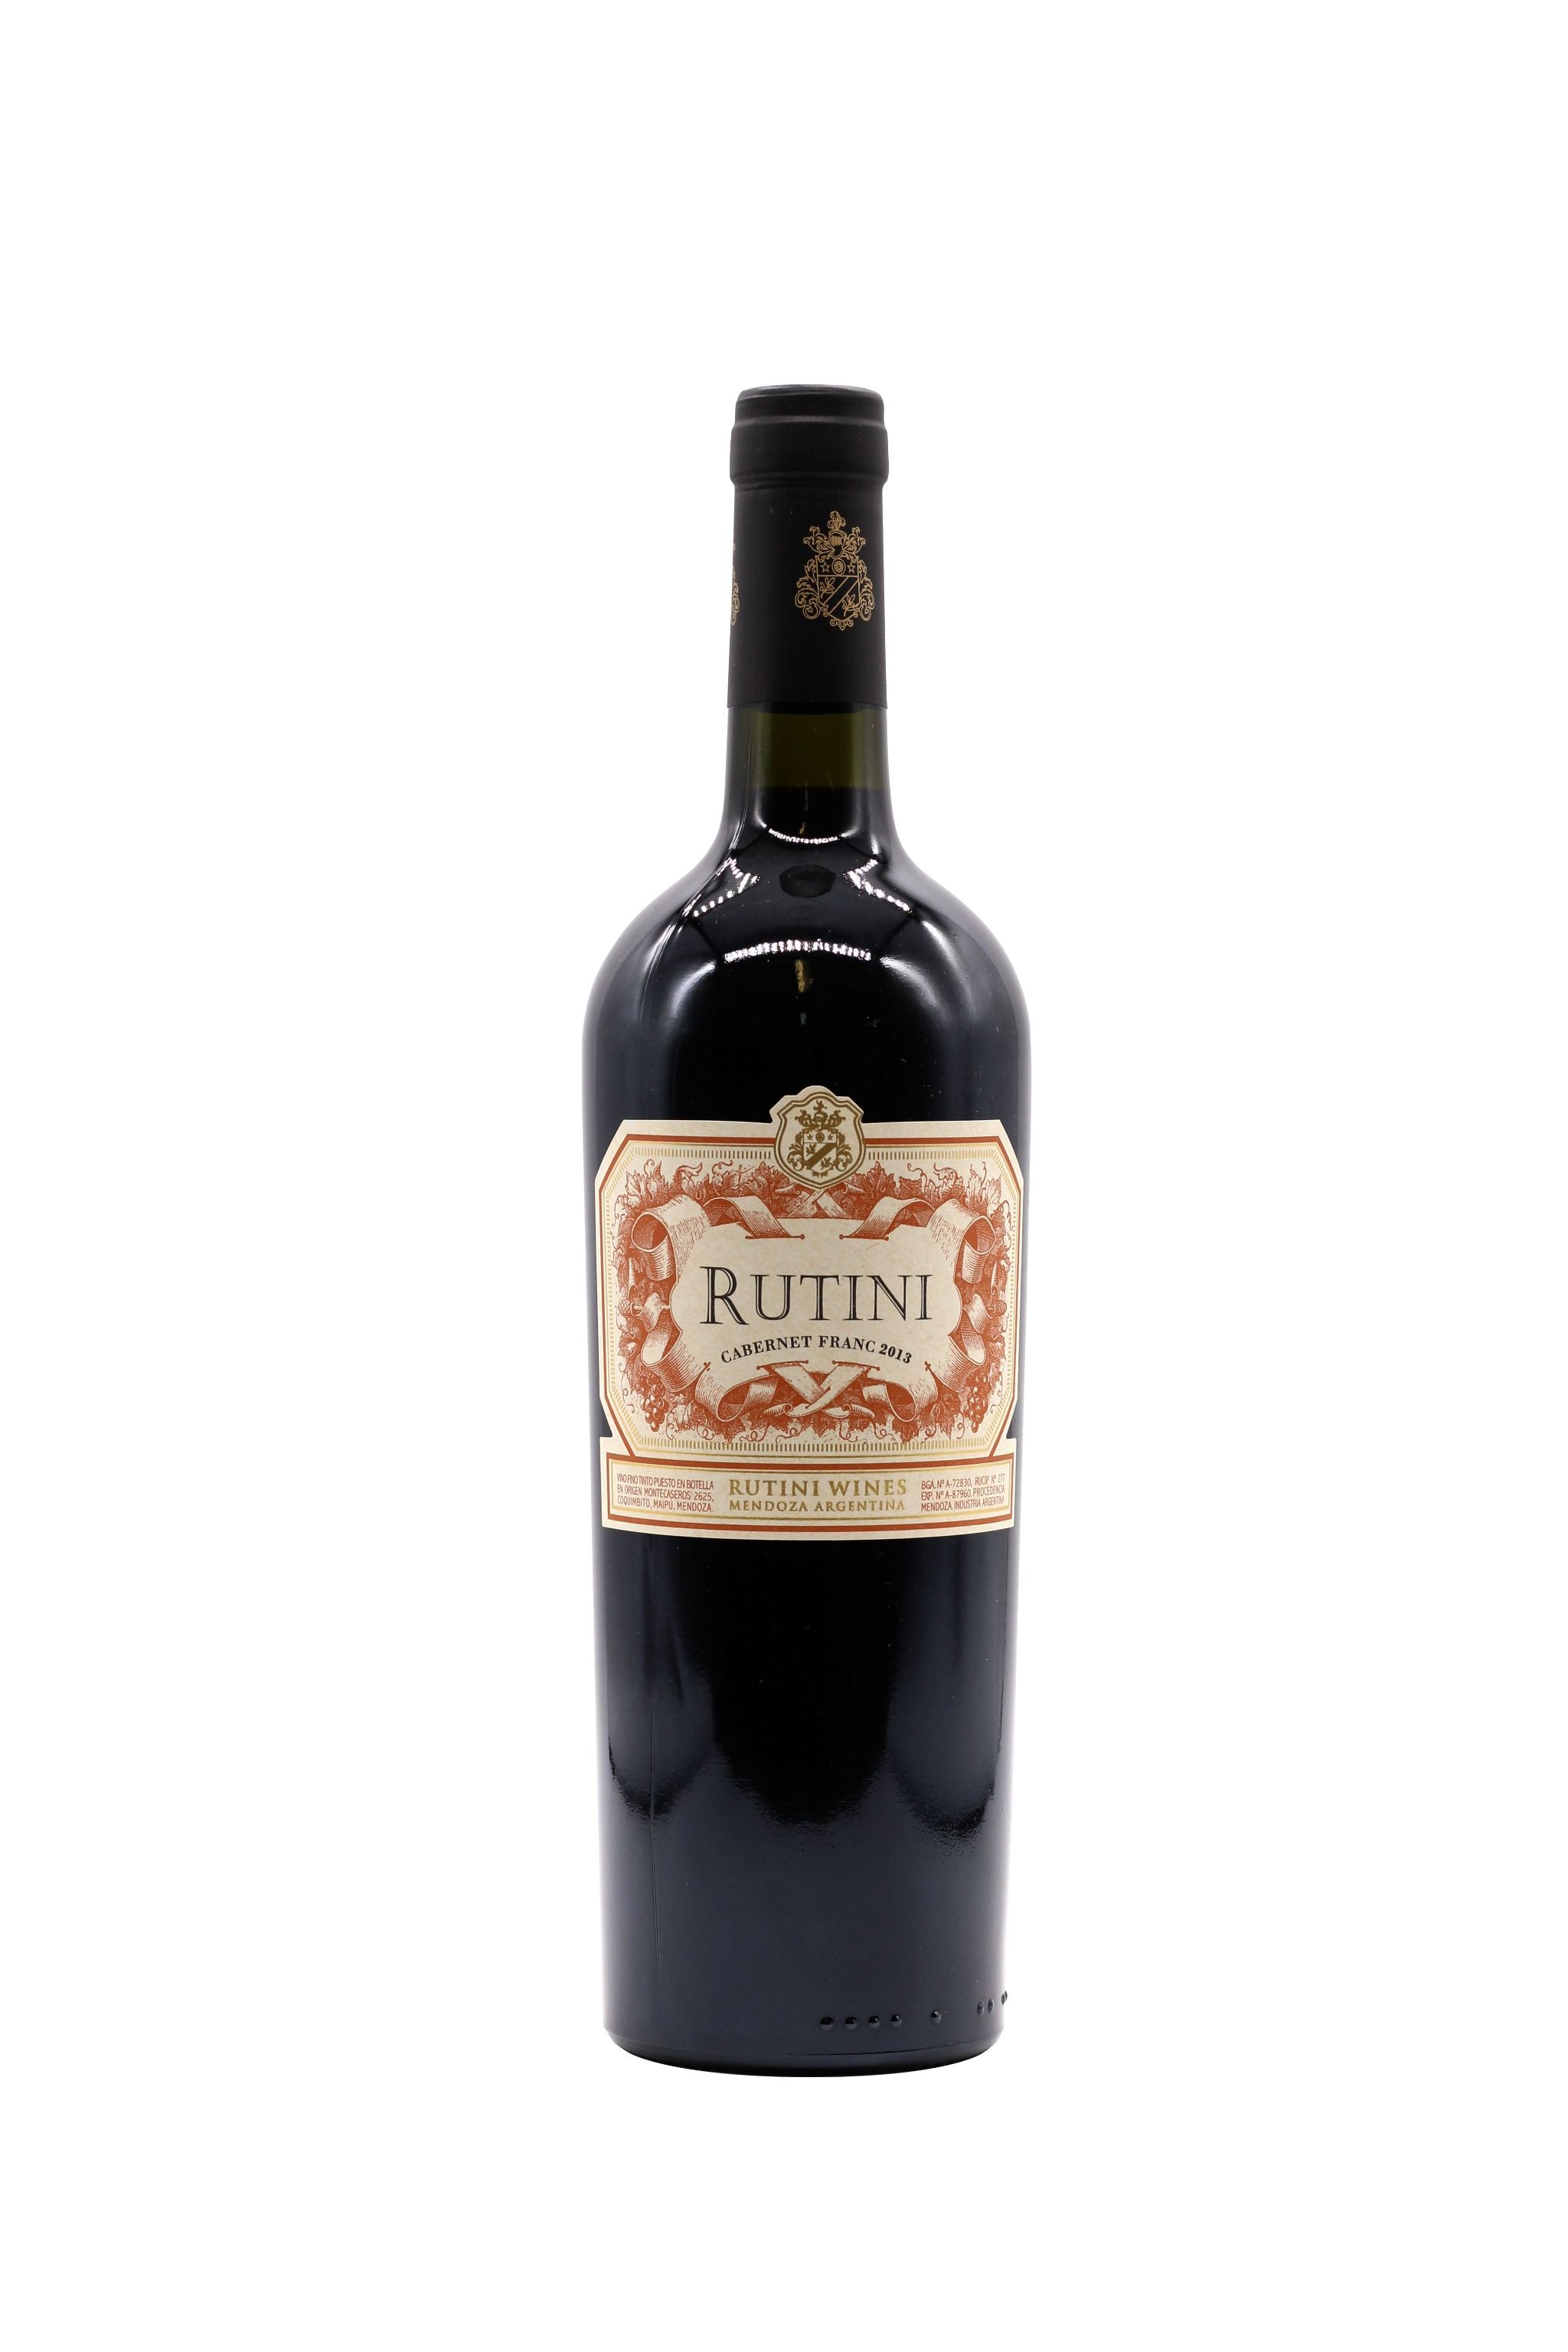 Rutini Collection Cabernet Franc 2013